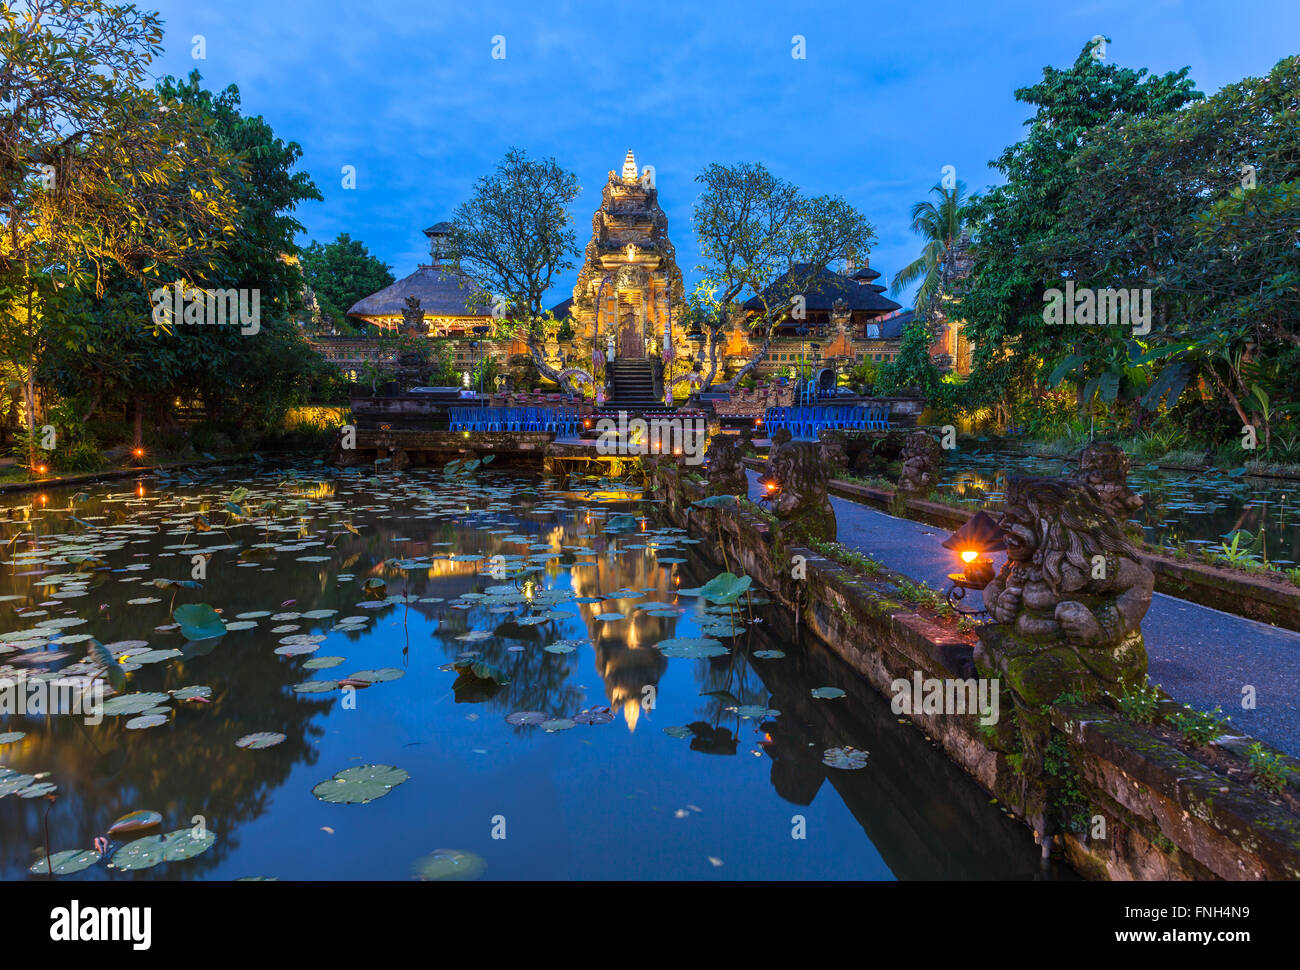 Pura Saraswati Temple with beatiful lotus pond at dusk before the dancing show, Ubud, Bali, Indonesia Stock Photo